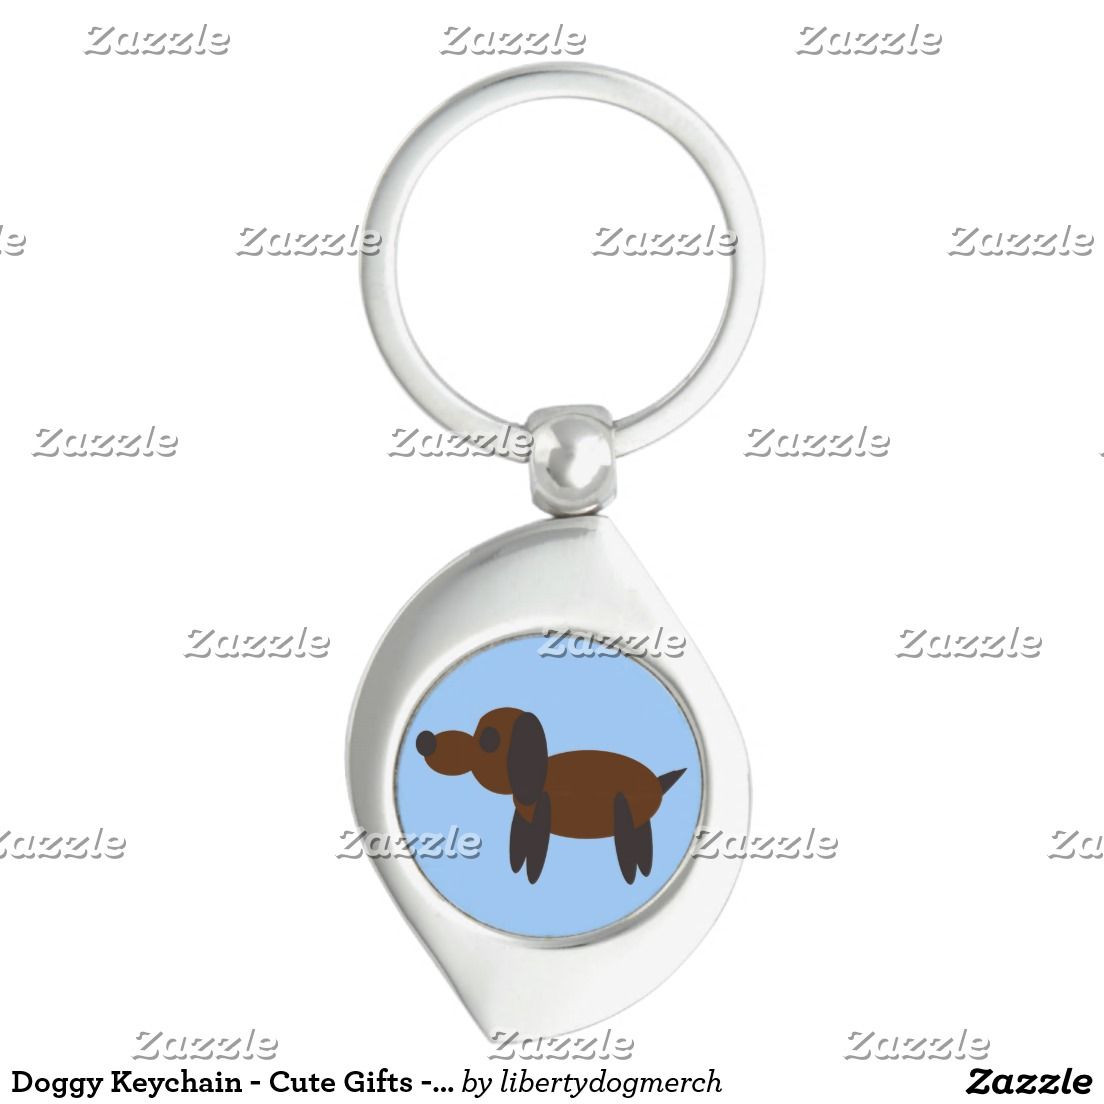 Doggy Keychain - Cute Gifts - All Occassion